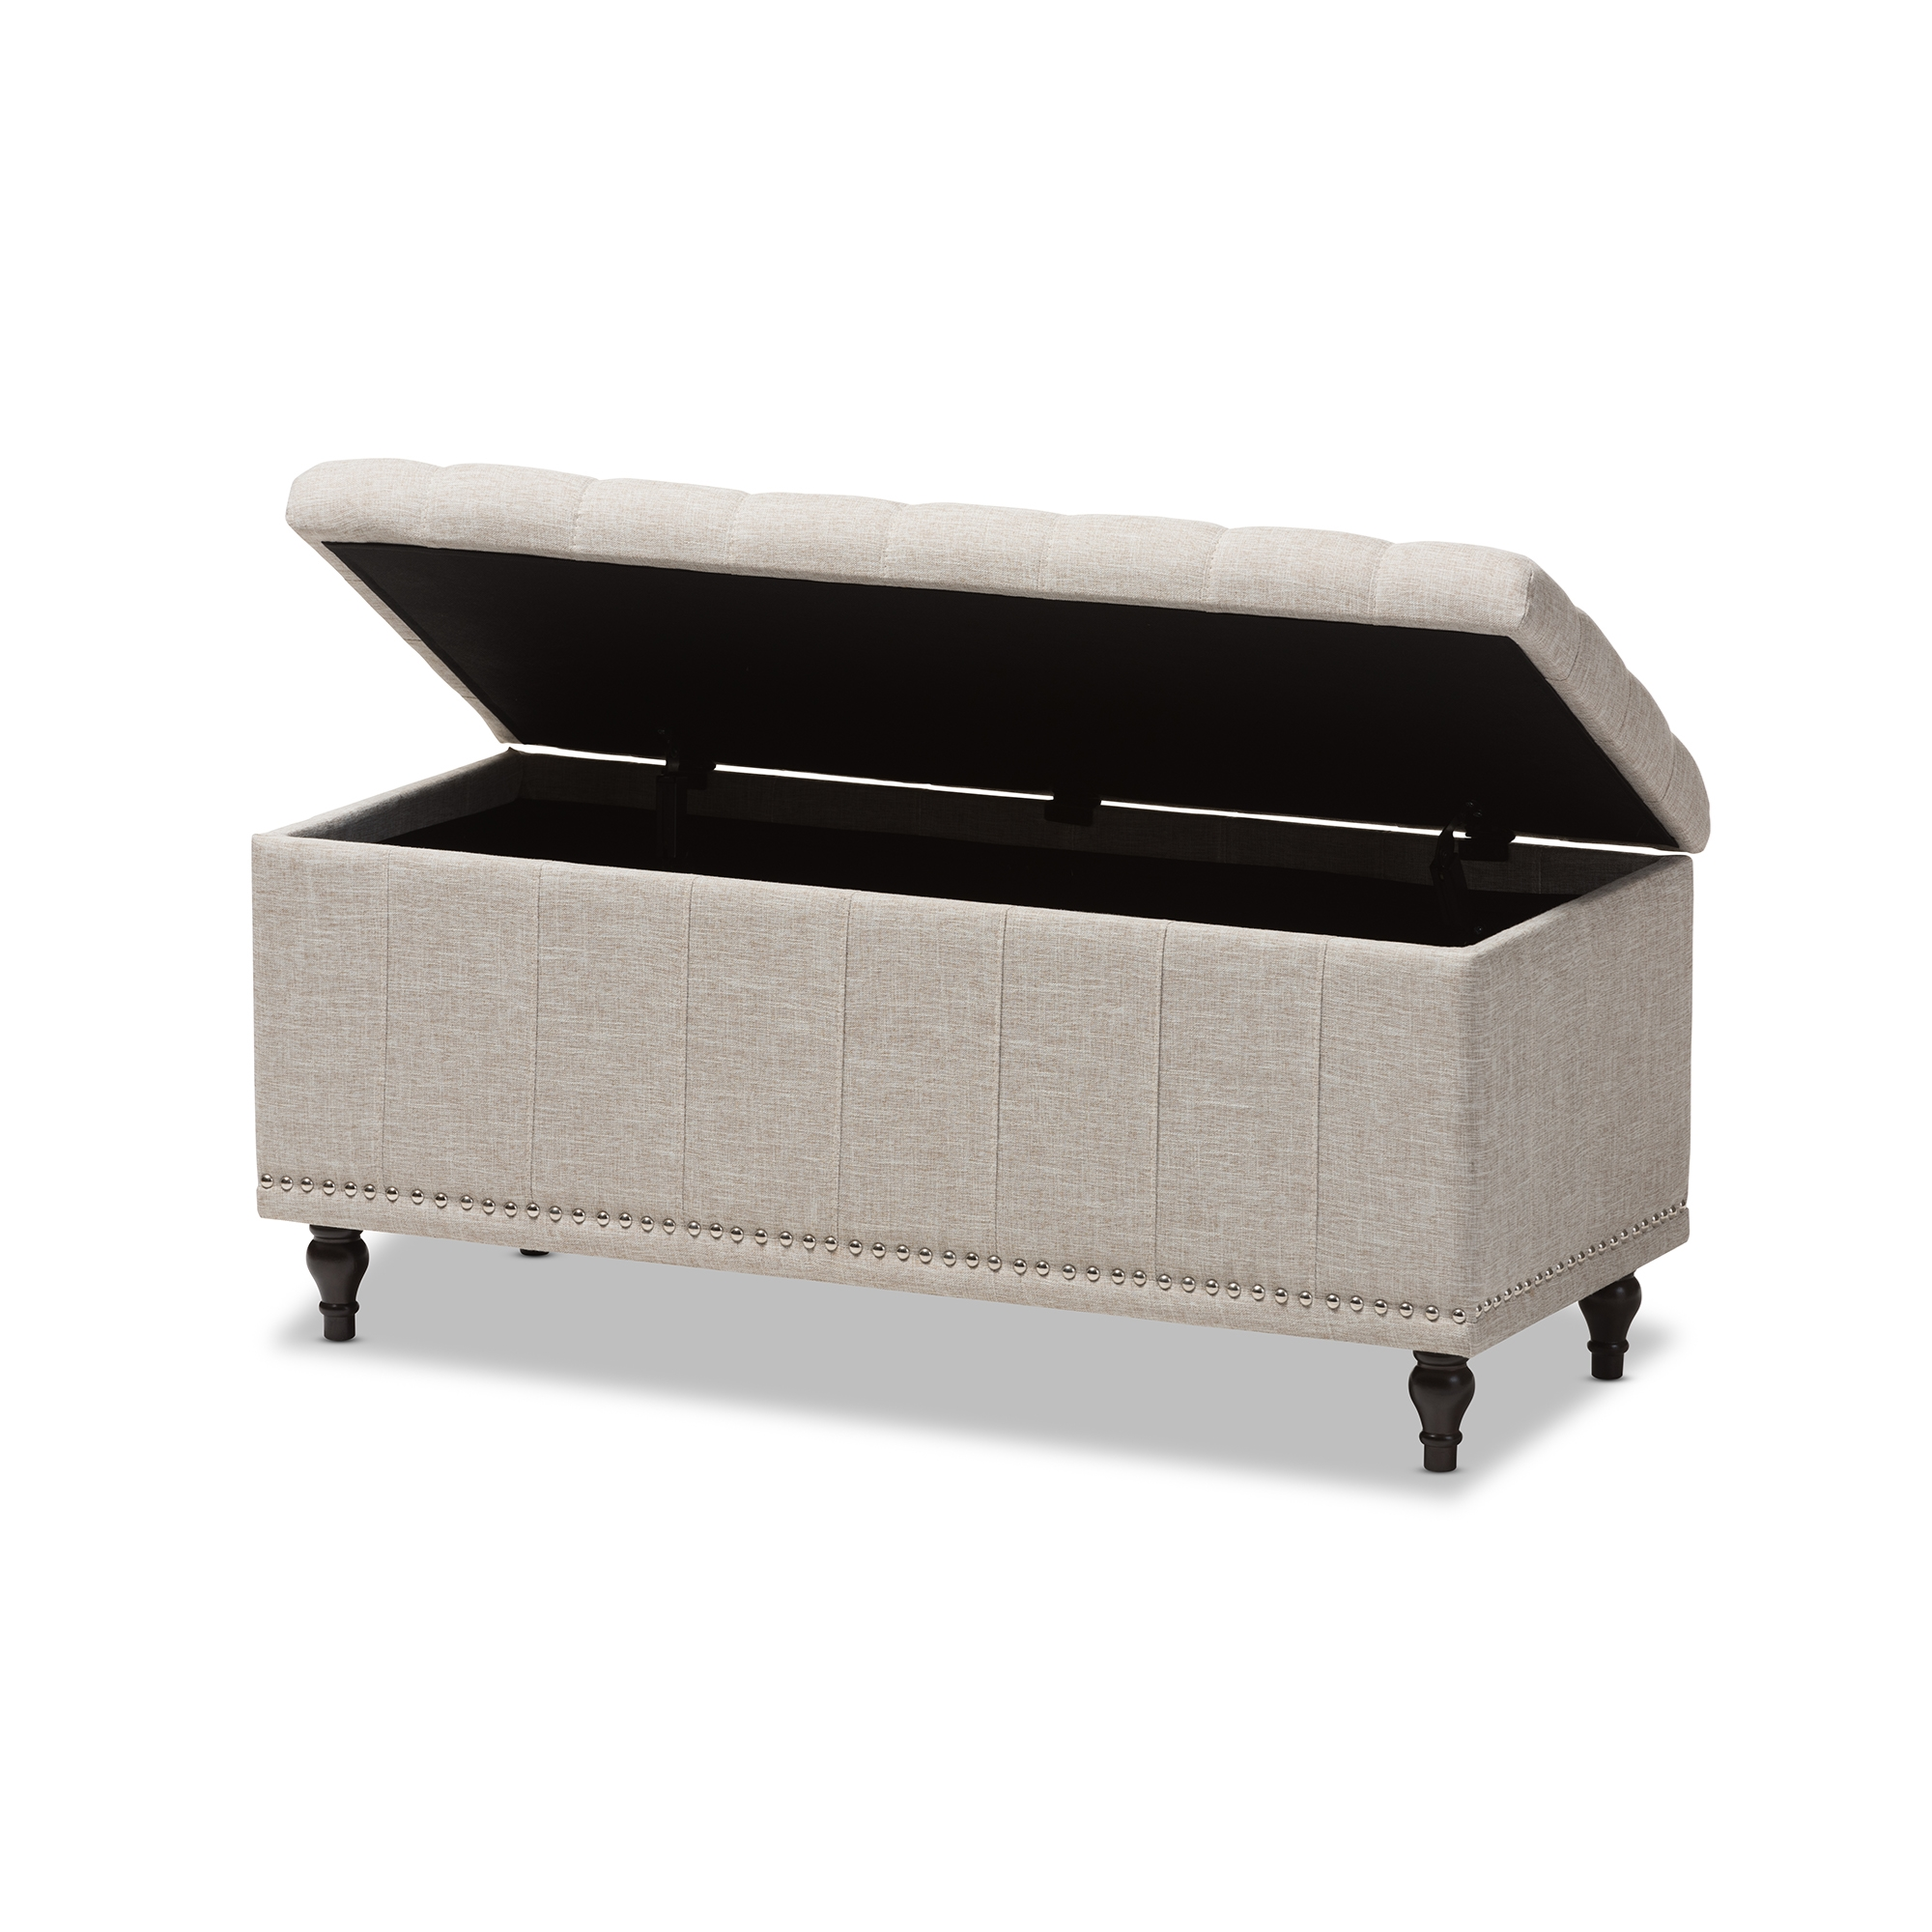 ... Baxton Studio Kaylee Modern Classic Beige Fabric Upholstered  Button Tufting Storage Ottoman Bench   IEBBT3137 ...